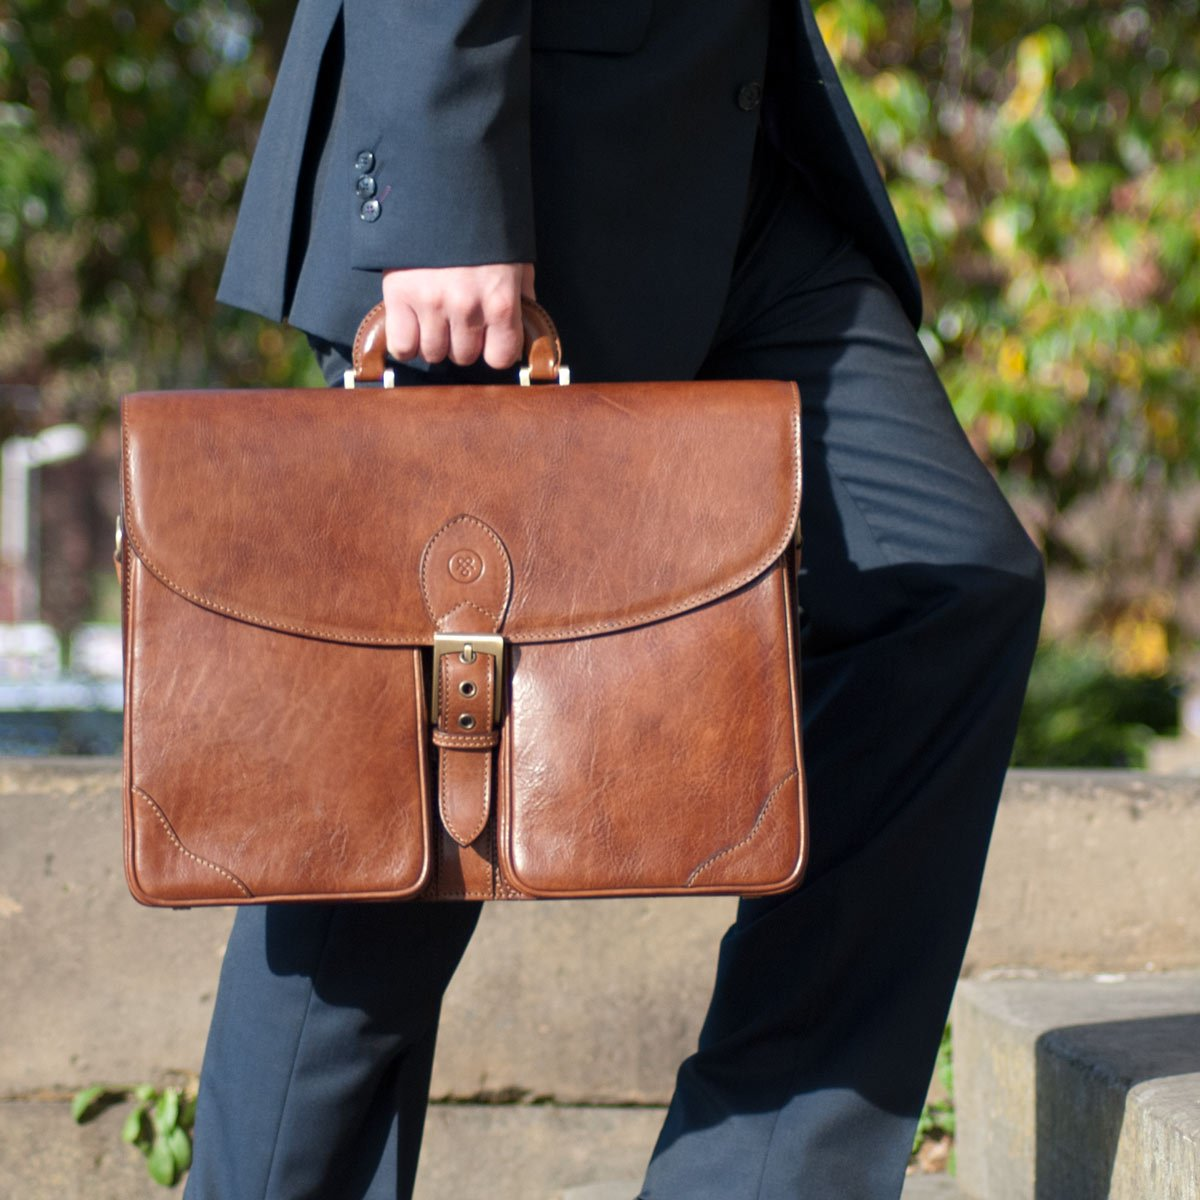 Maxwell Scott Personalized Luxury Tan Large Briefcase (The Tomacelli 3 section) by Maxwell Scott Bags (Image #8)